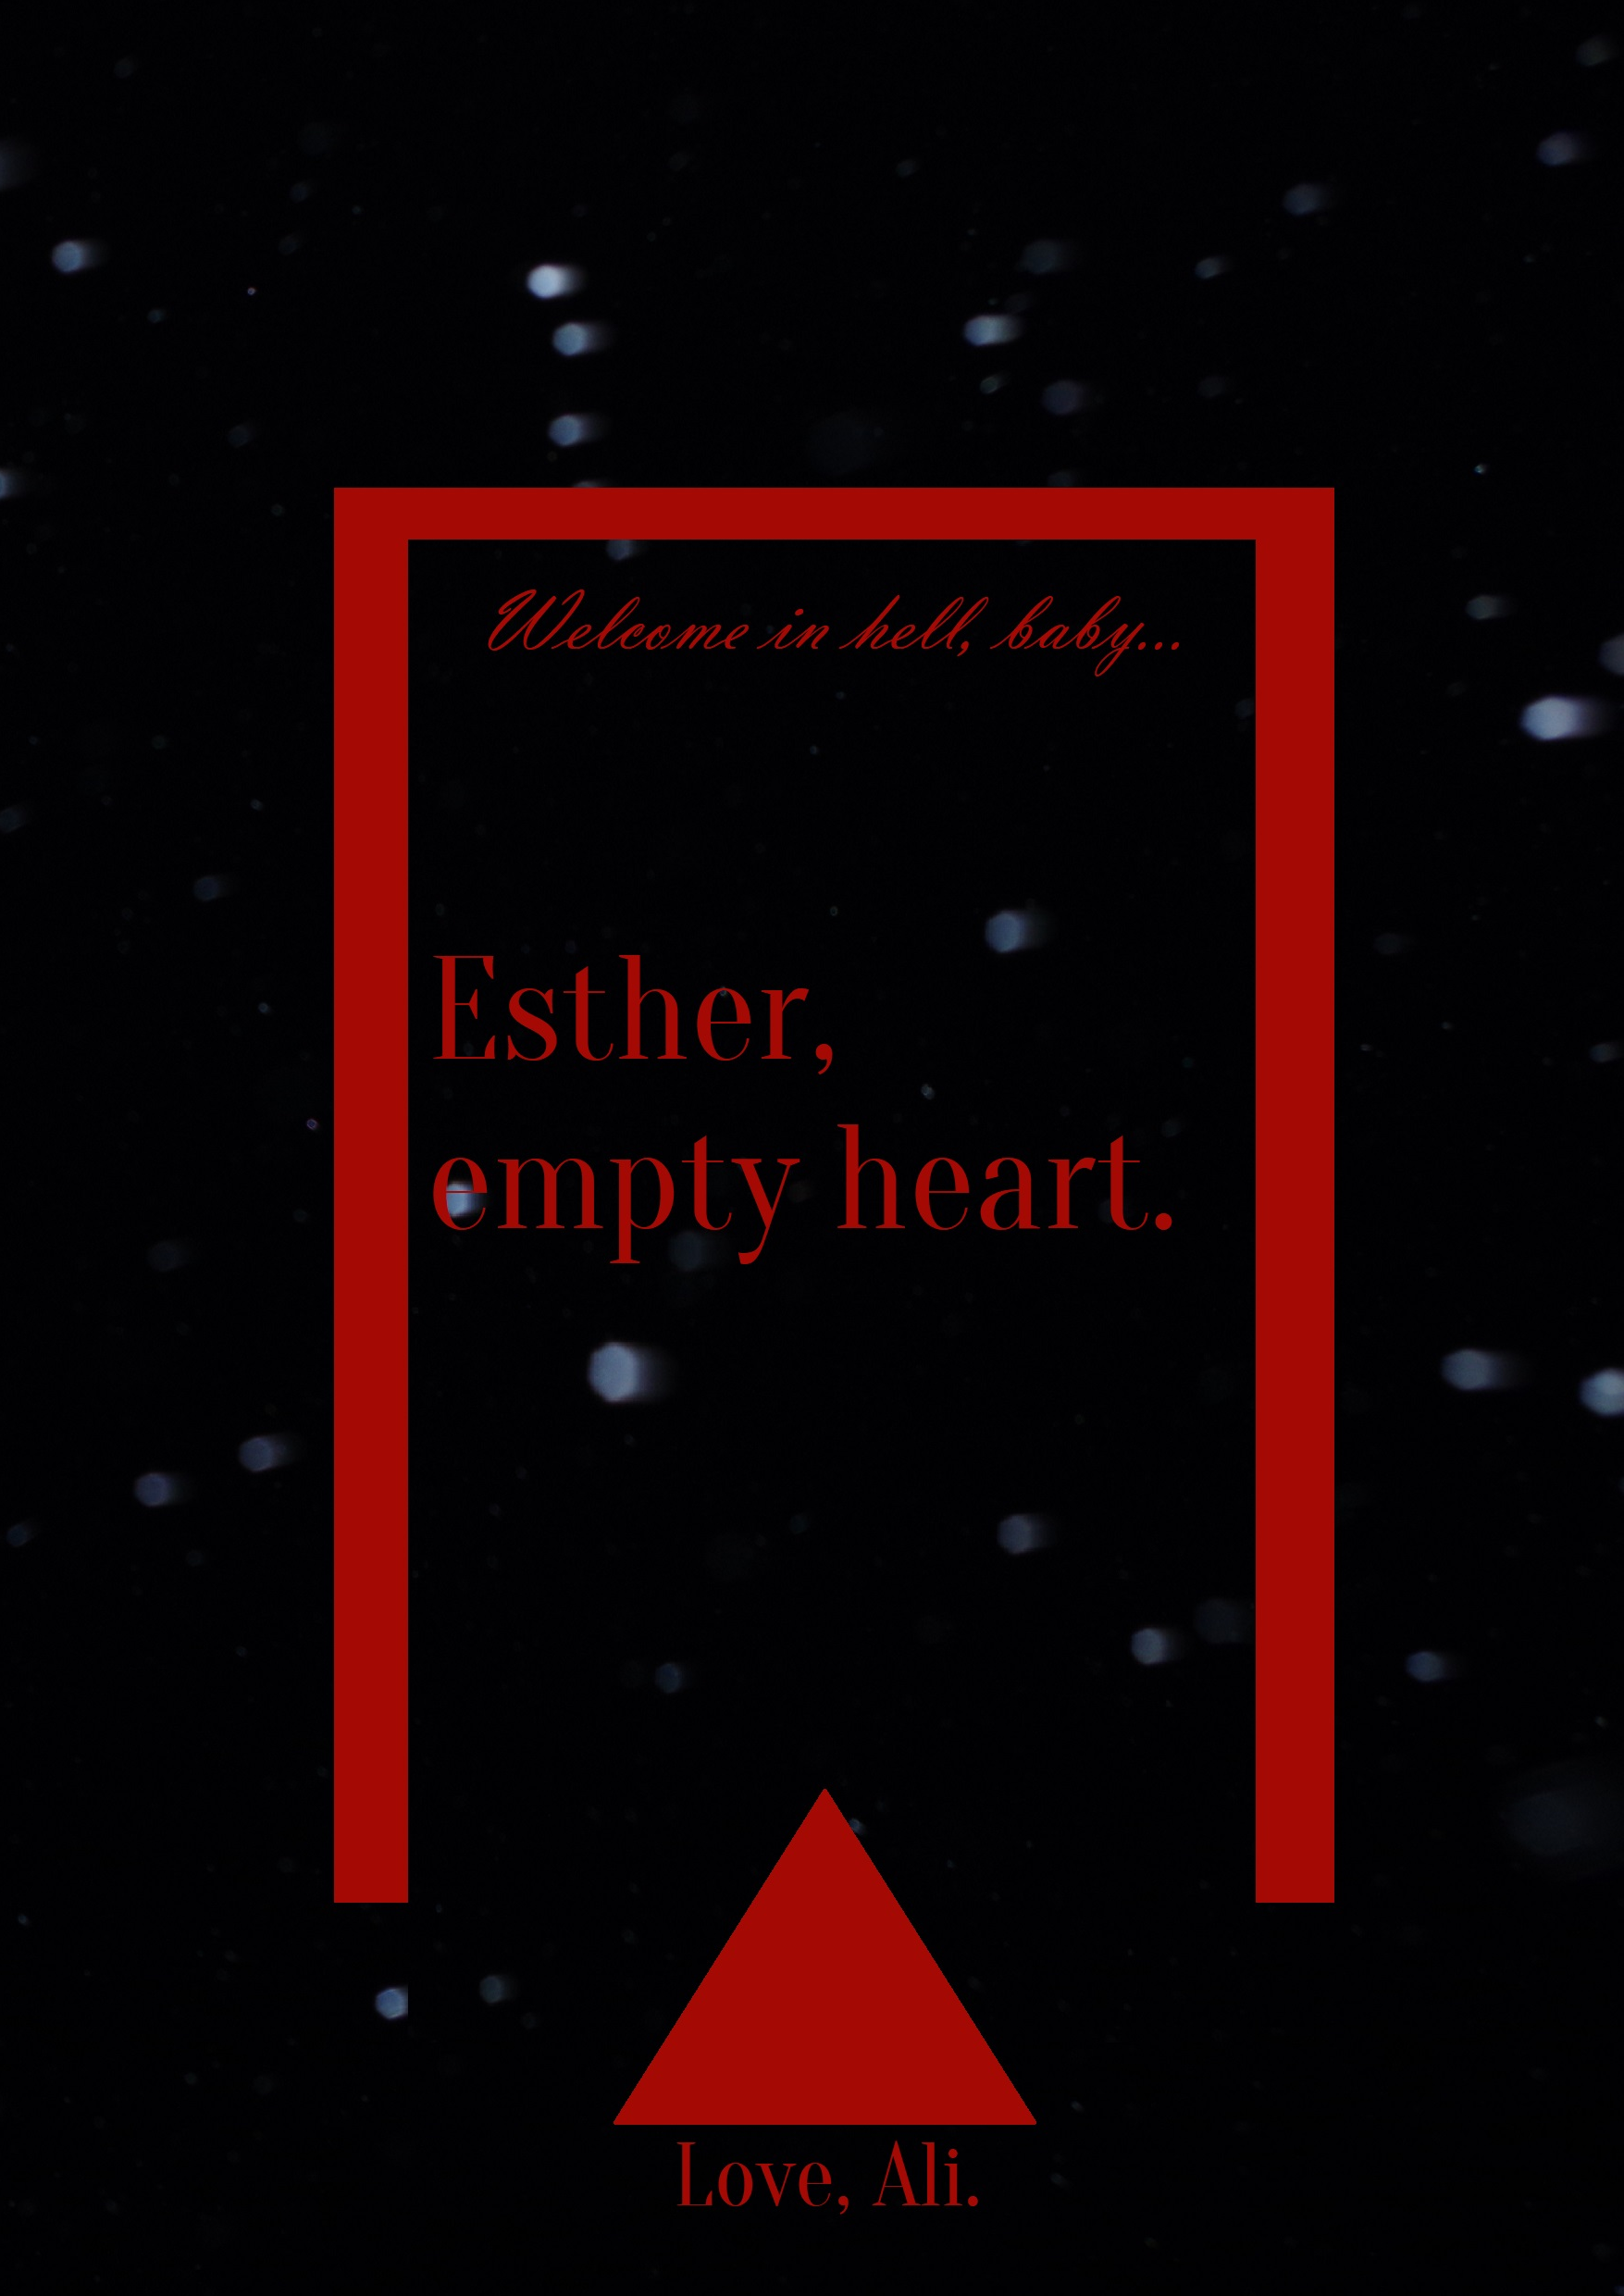 Esther, empty heart.